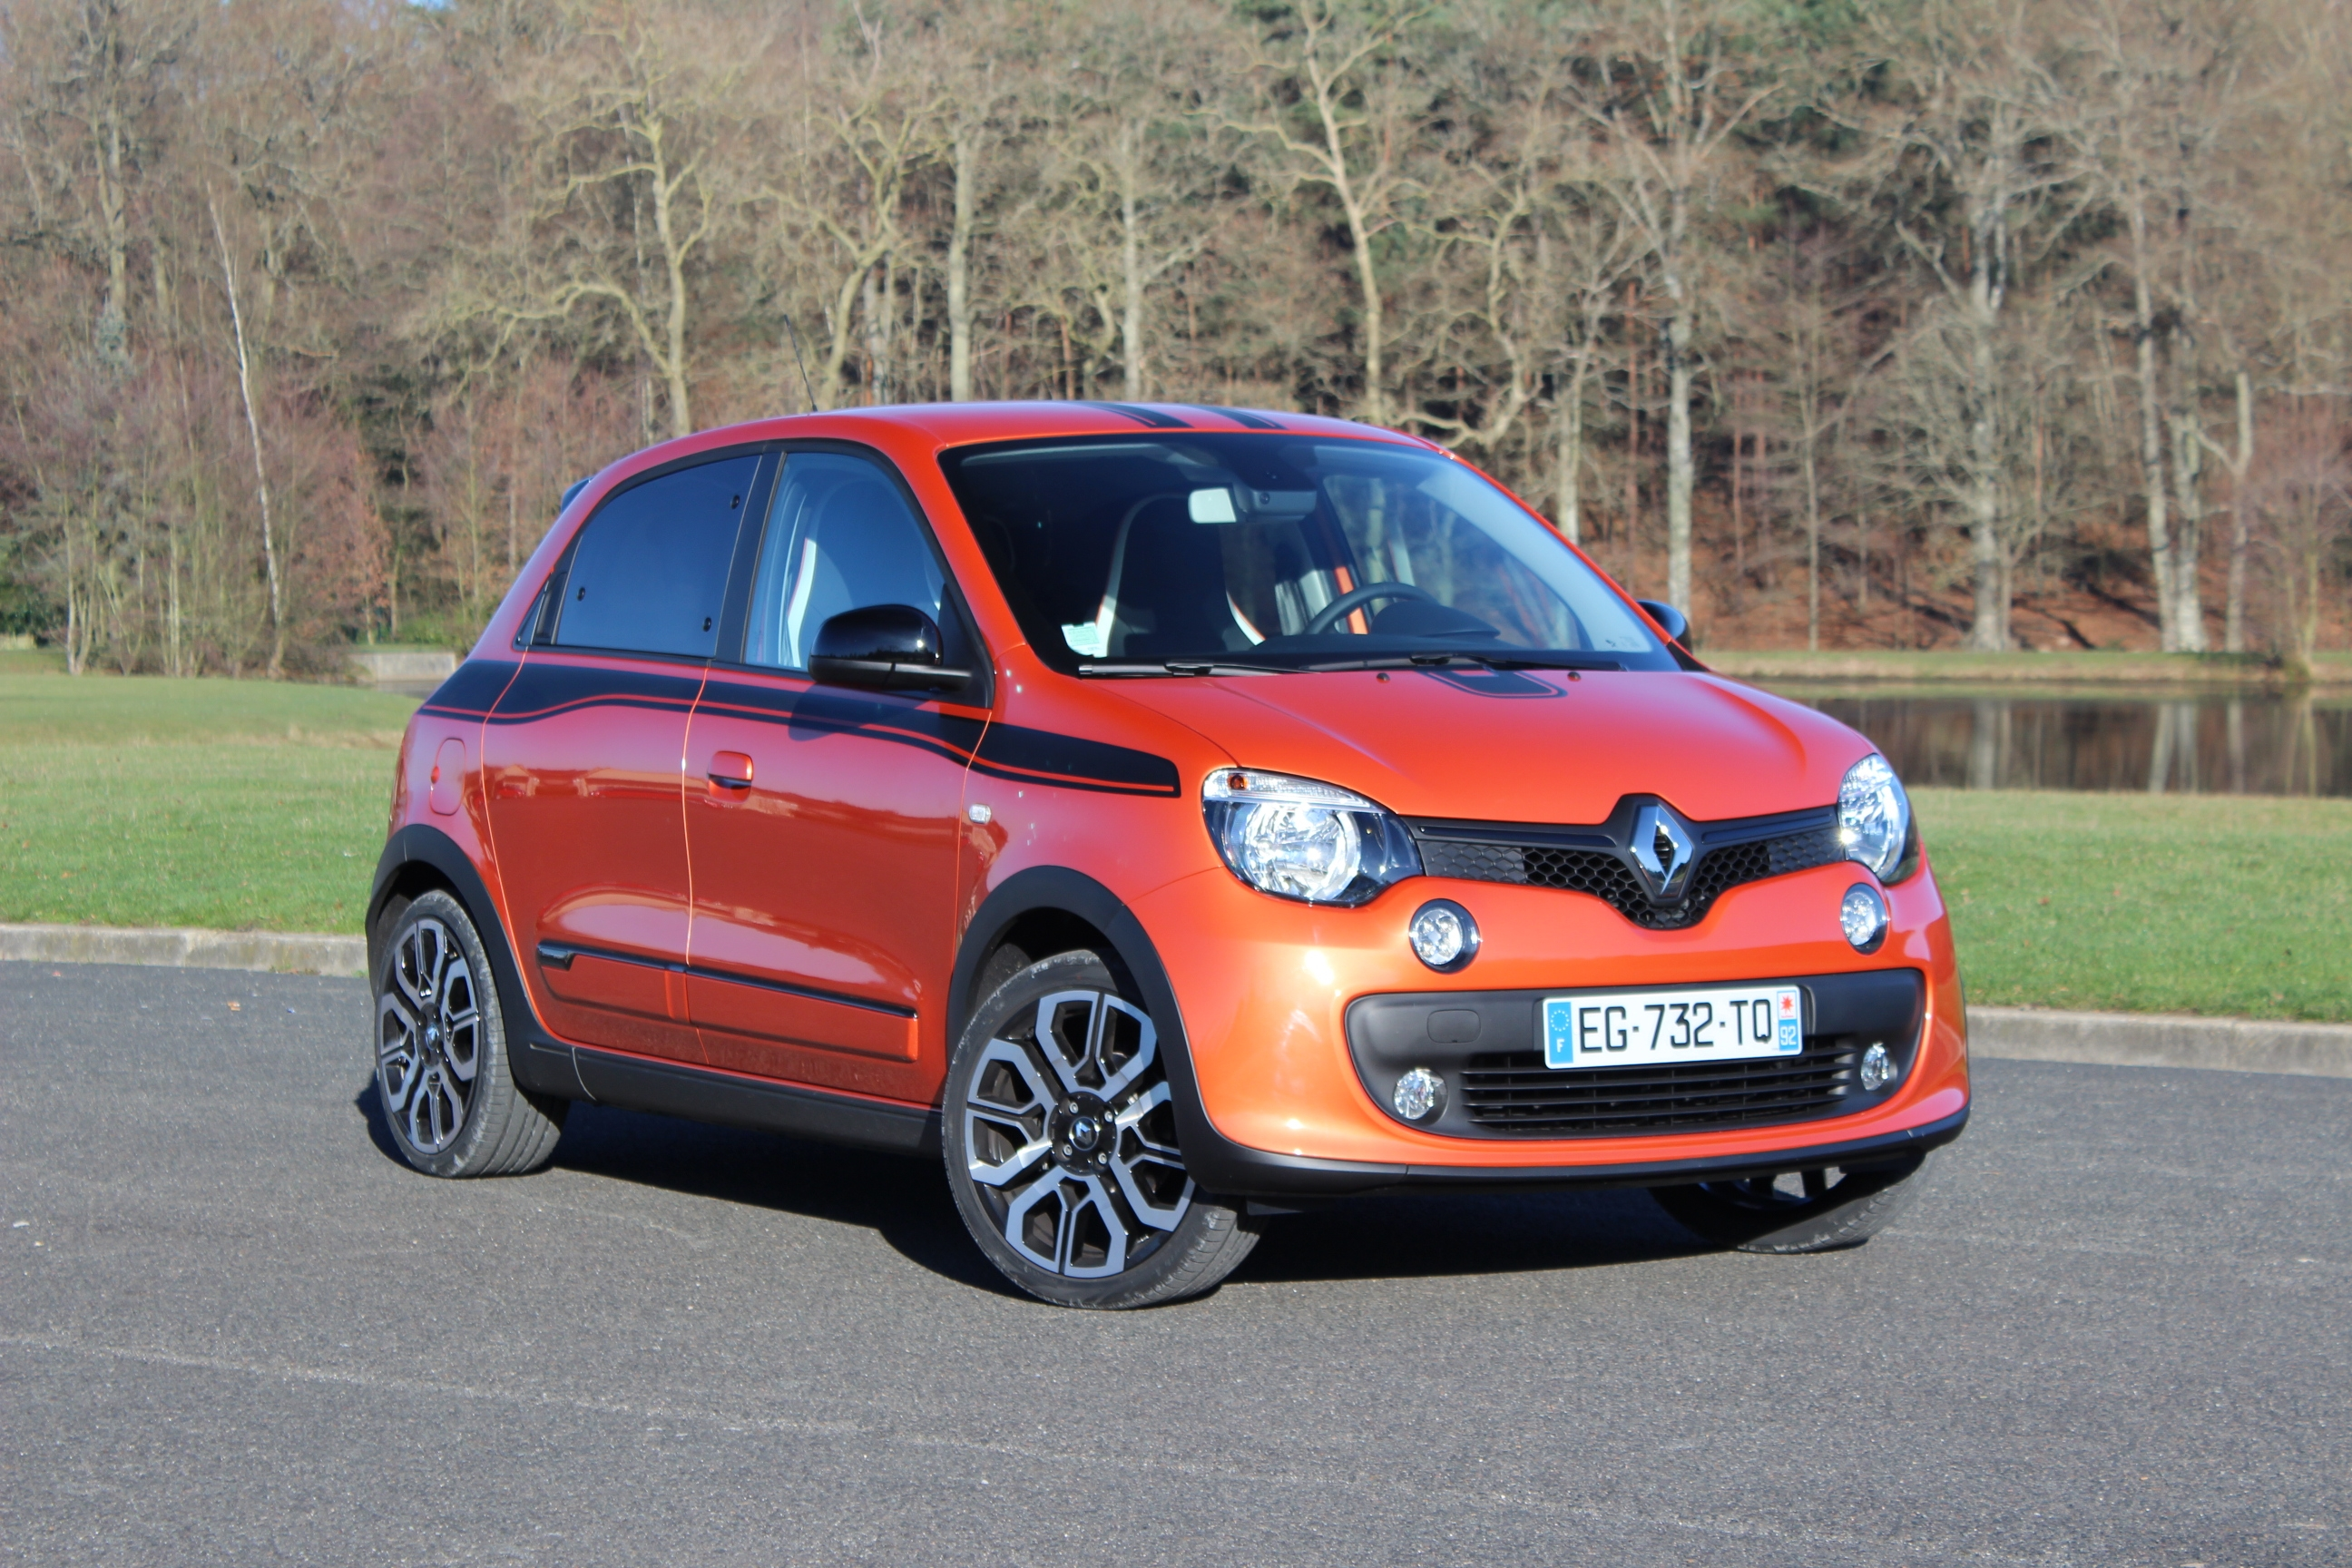 renault twingo 3 gt essais fiabilit avis photos vid os. Black Bedroom Furniture Sets. Home Design Ideas